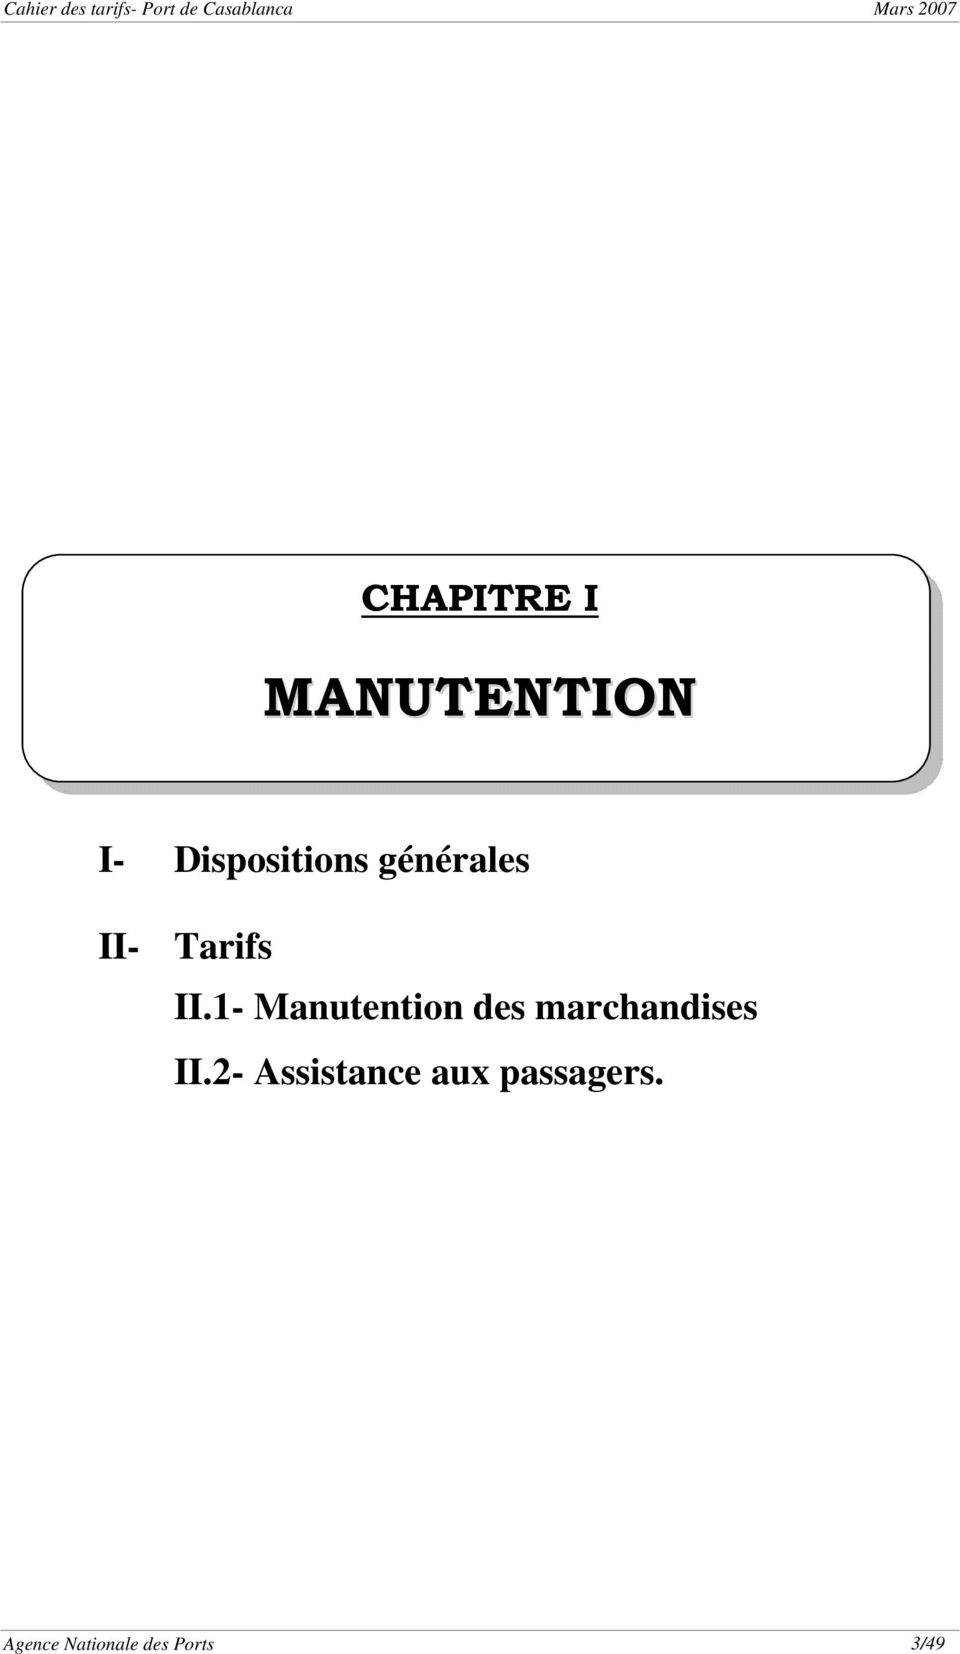 1- Manutention des marchandises II.